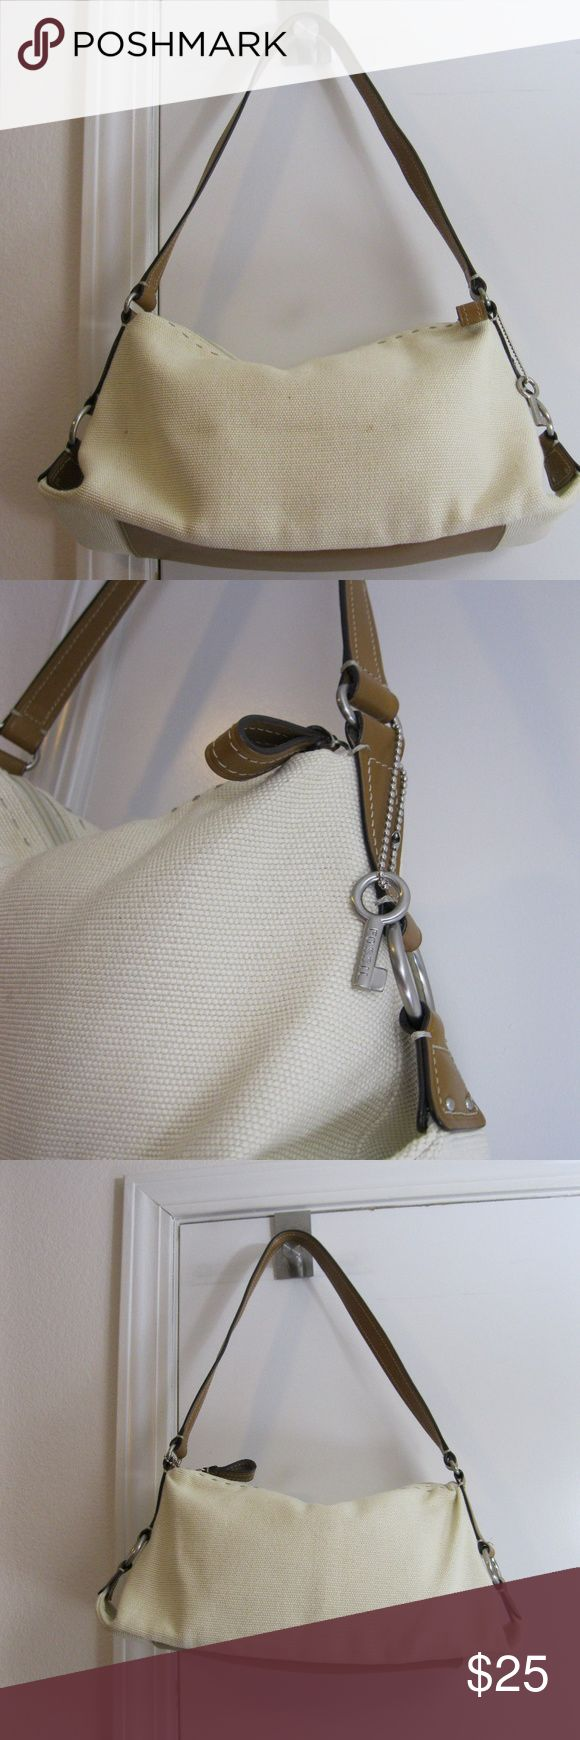 """Fossil Beige Canvas Hobo Shoulder Bag - 75082 Fossil Beige Canvas Hobo Shoulder Bag with Brown Accents - 75082. Bag has one inside zip pocket, and does have the Fossil Key still attached.   Bag measures approximately 13"""" wide at base, 7"""" tall, and 4.5"""" across the bottom. Strap drop 10"""".   Bag in general good shape - a few small barely noticeable marks outside, but and no stains on inner lining. Fossil Bags Shoulder Bags"""